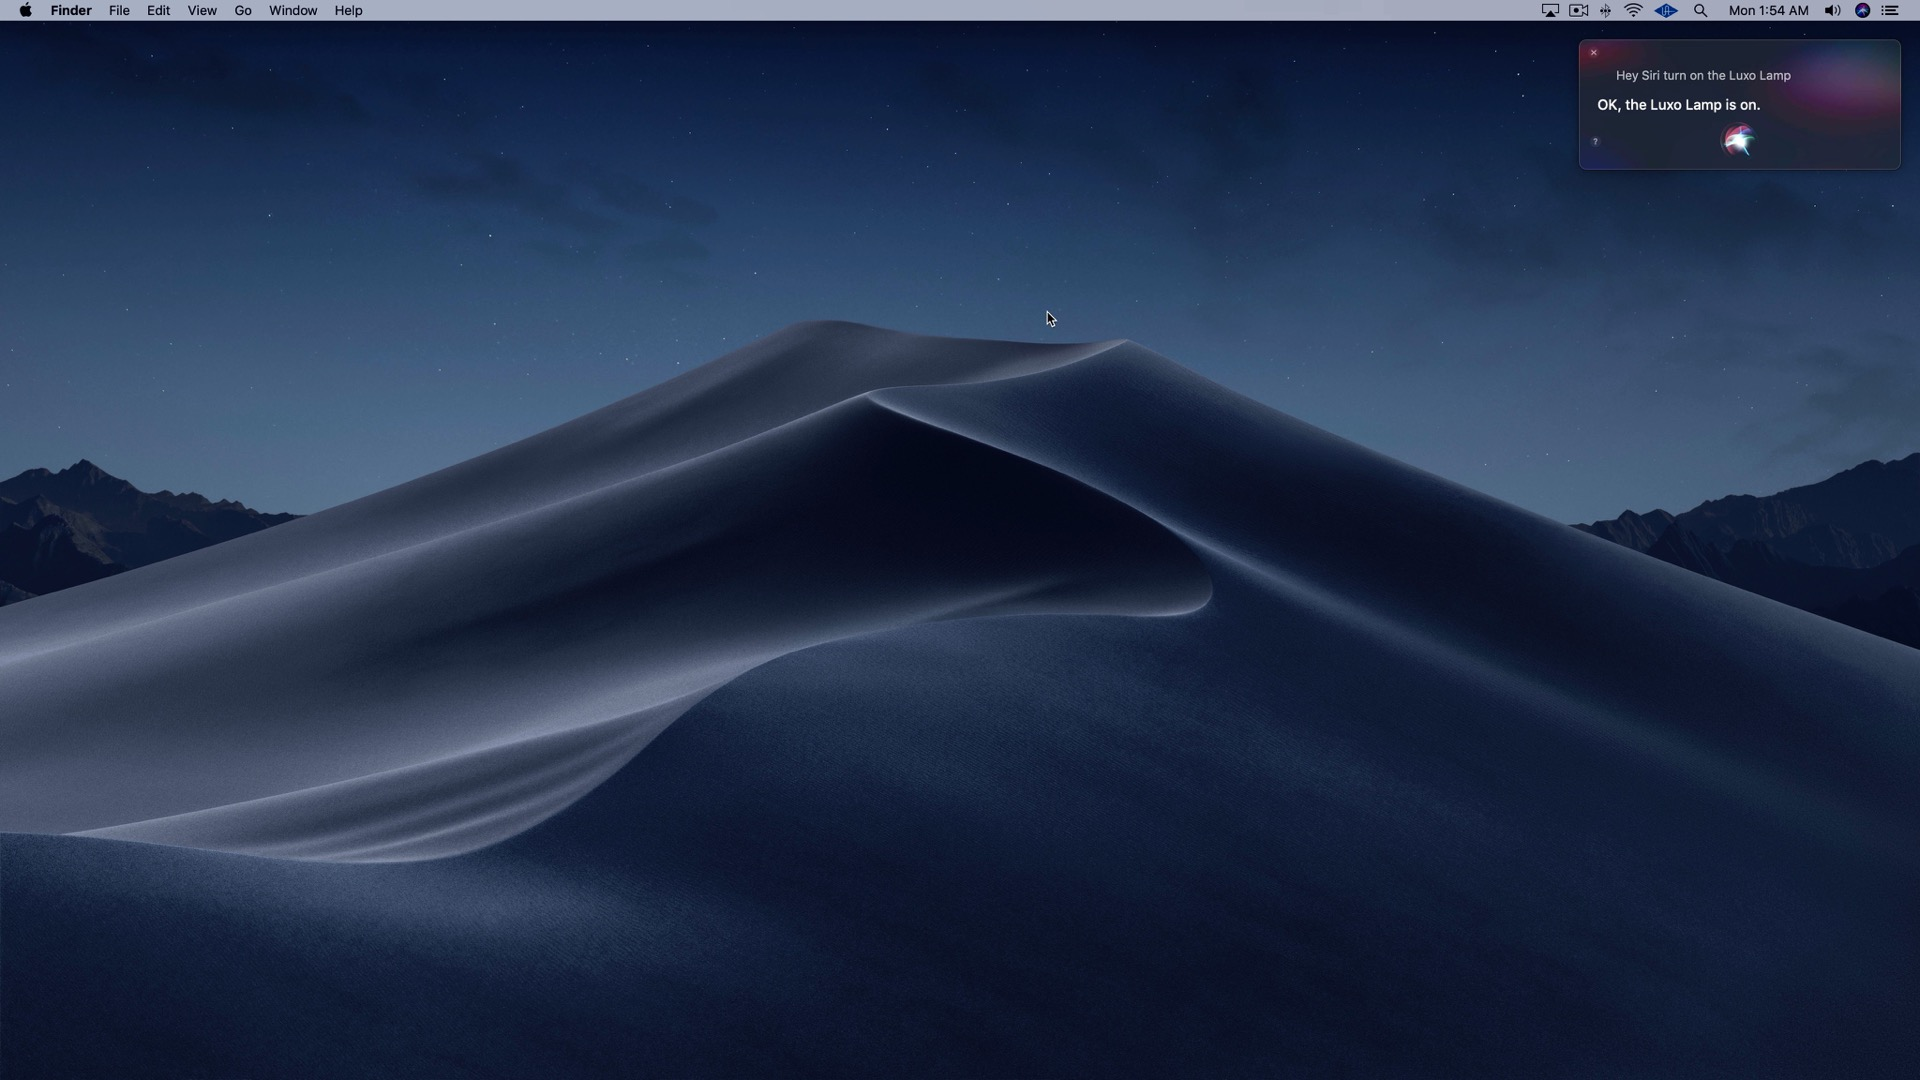 macOS Mojave: Hands-on with 20+ new changes and features [Video